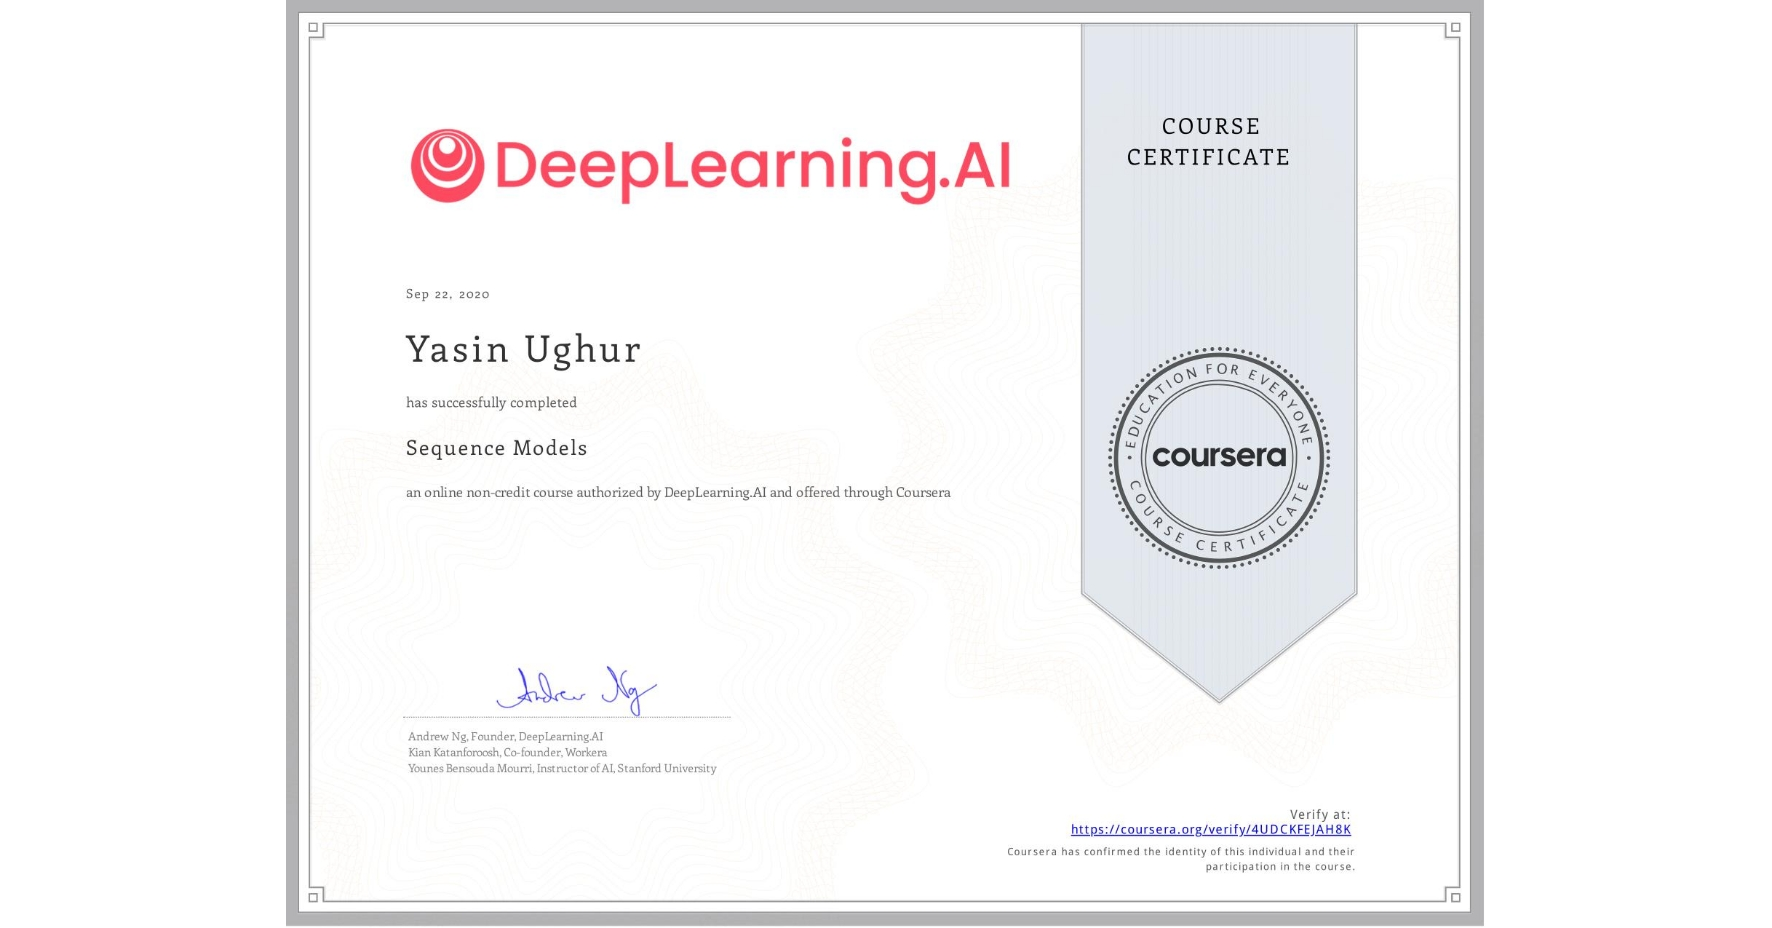 View certificate for Yasin Ughur, Sequence Models, an online non-credit course authorized by DeepLearning.AI and offered through Coursera